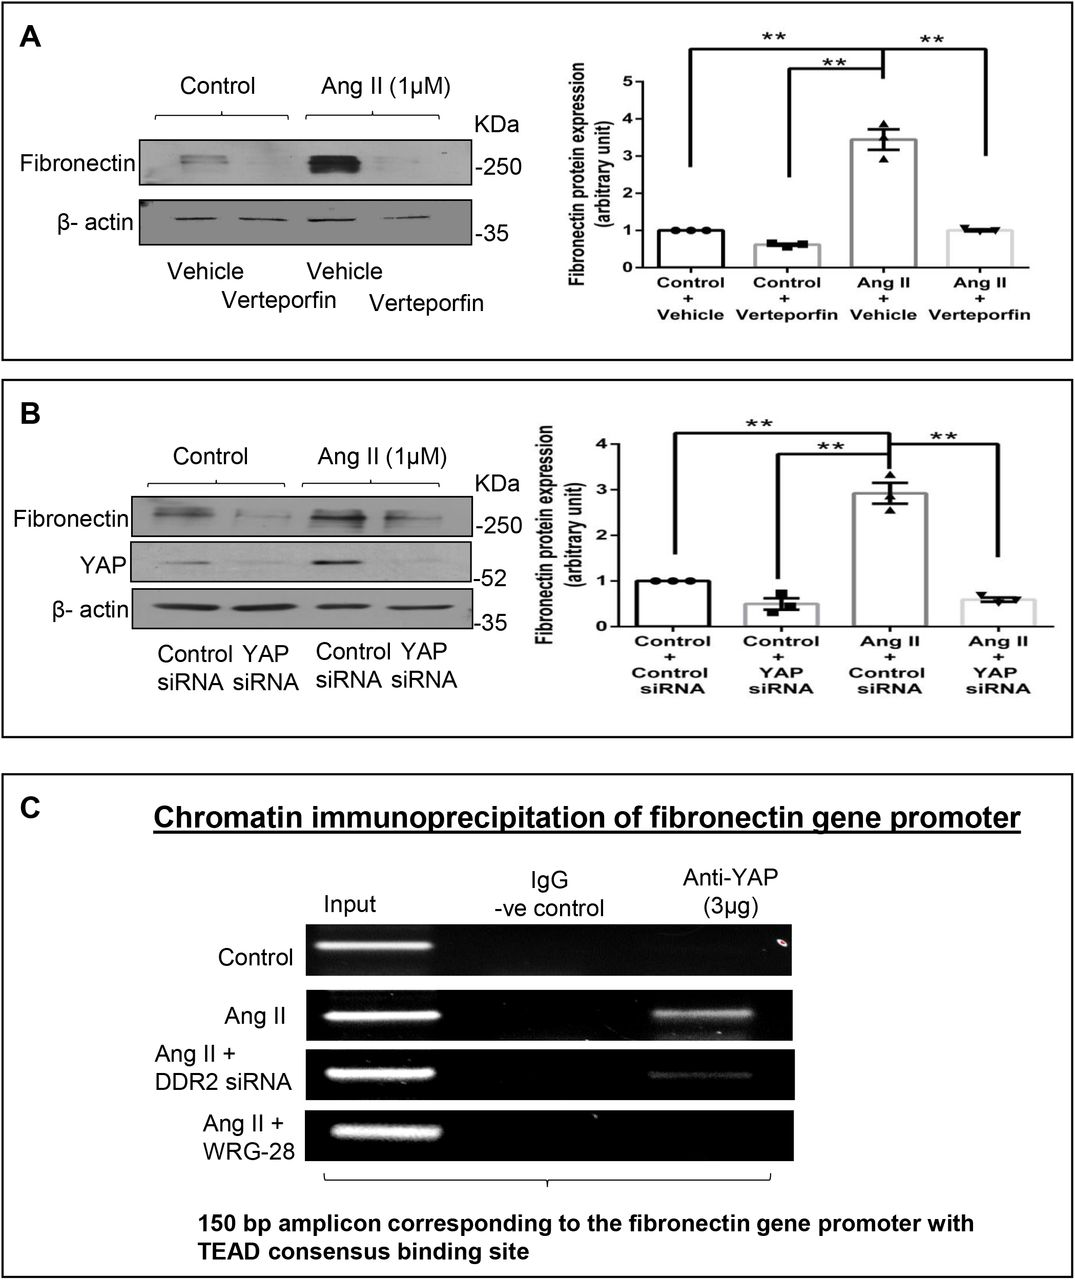 Transcriptional regulation of fibronectin by DDR2-activated YAP transcription coactivator ( A ) Cardiac fibroblasts were treated with Verteporfin (10 μM) for 1 h prior to Ang II treatment. Cells were collected at 12 h post-Ang II treatment and fibronectin protein levels were examined, with β-actin as loading control. **p